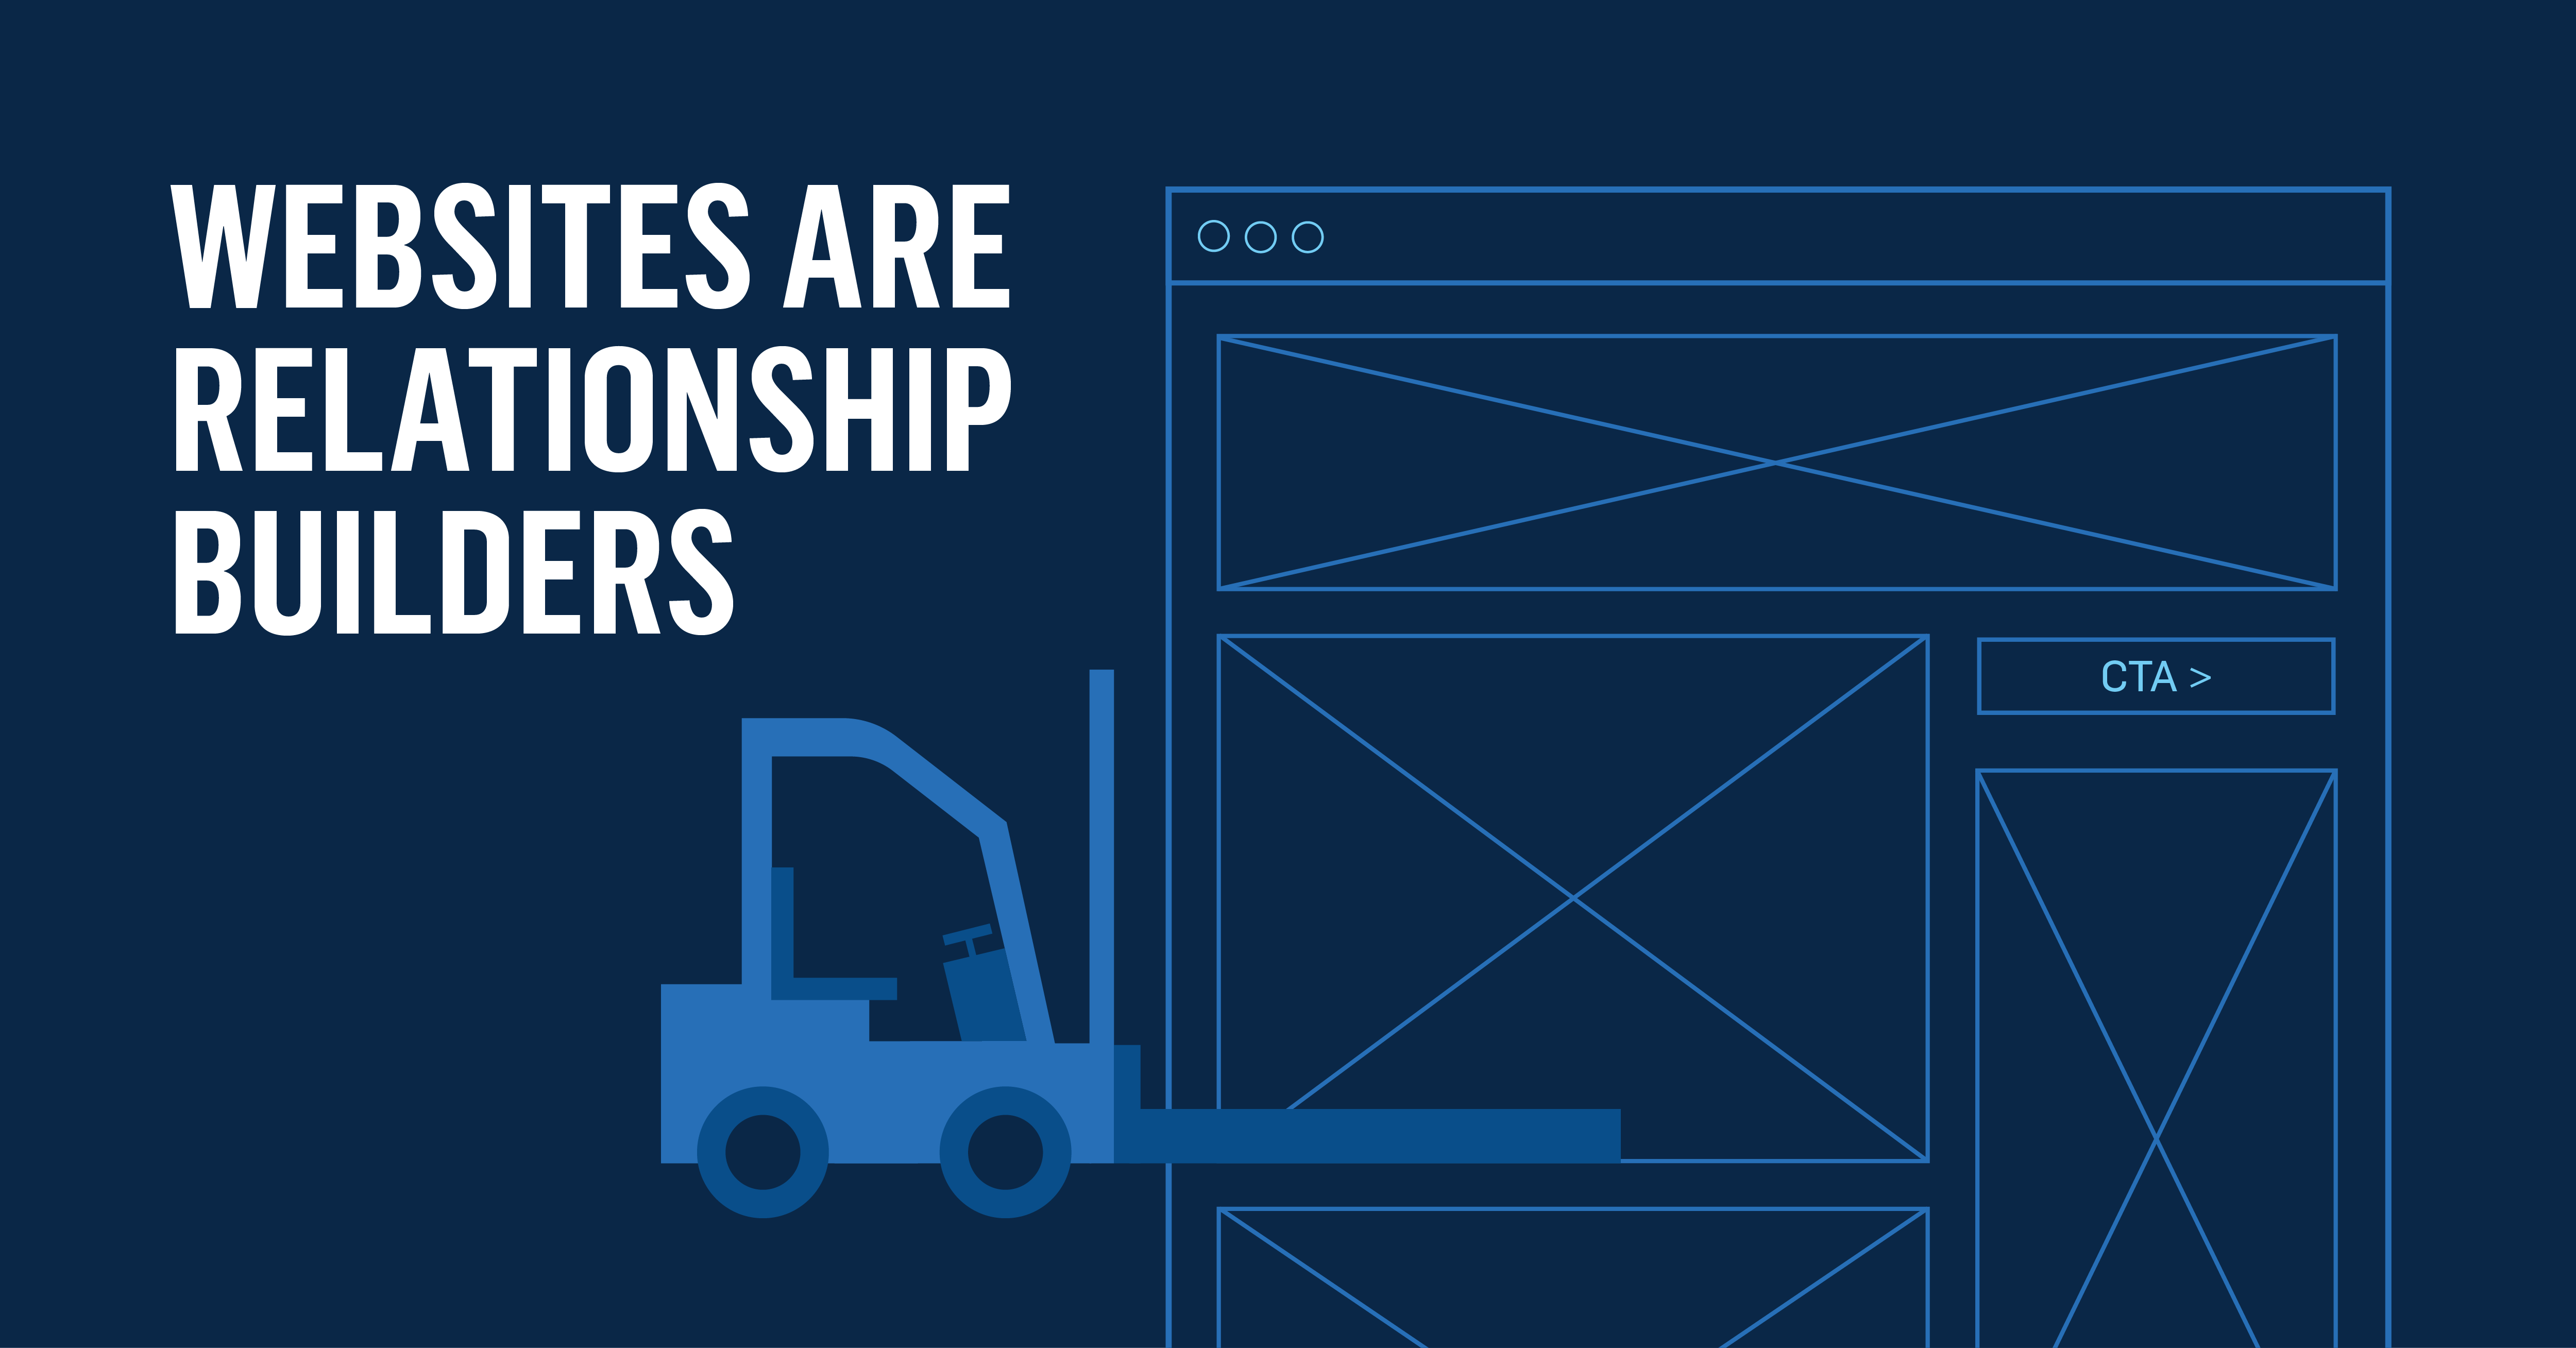 Websites are Relationship Builders